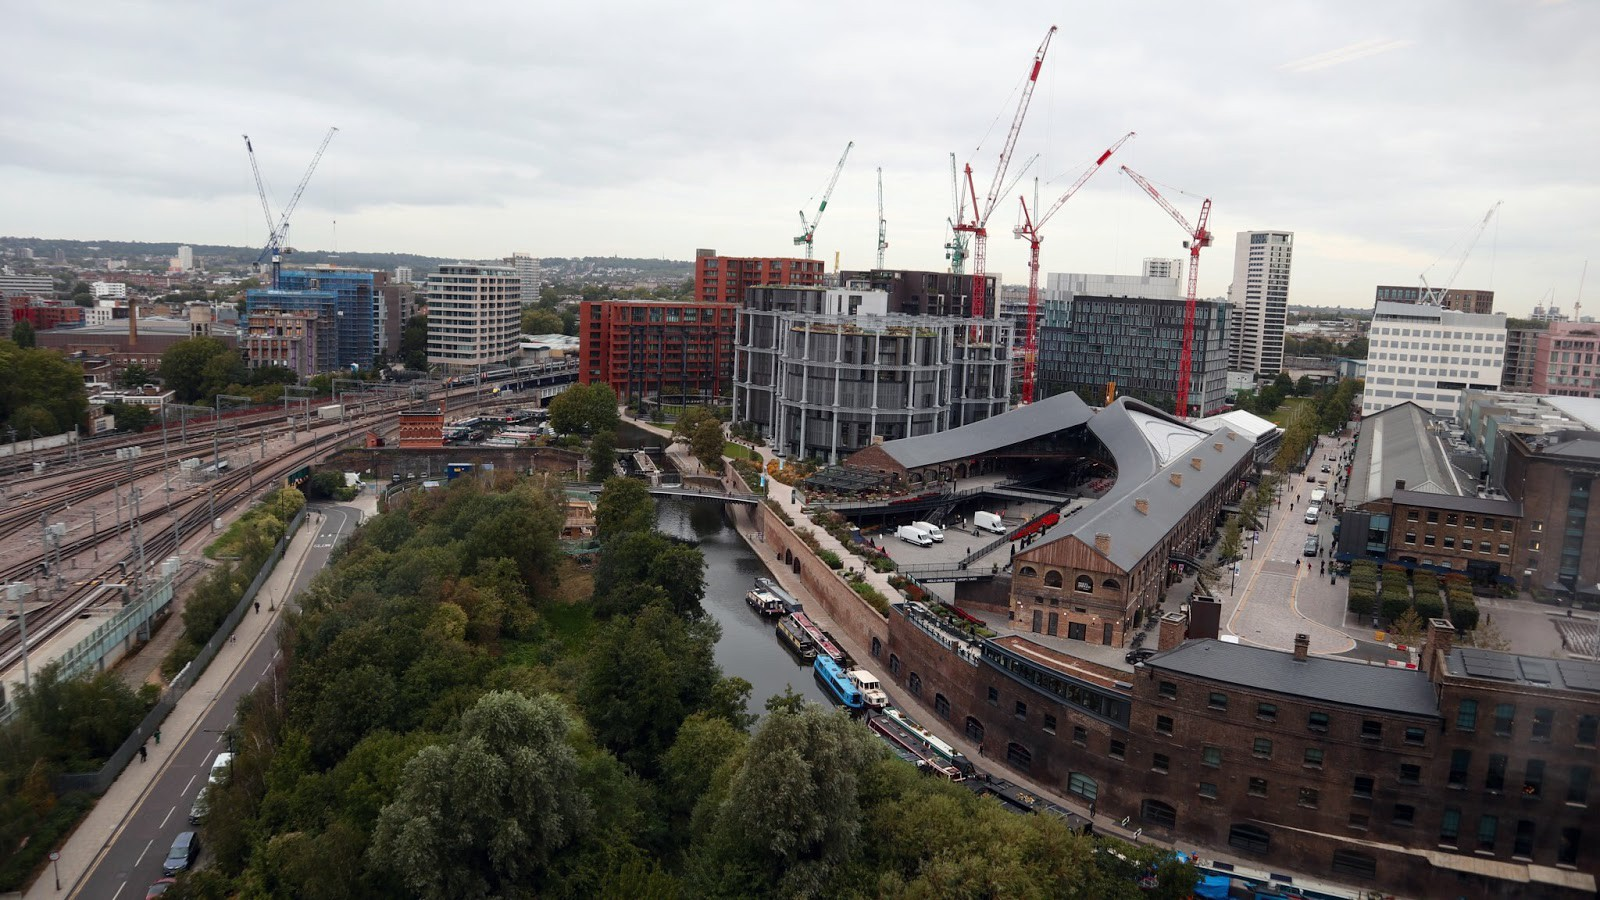 Views from the top of Camden Council